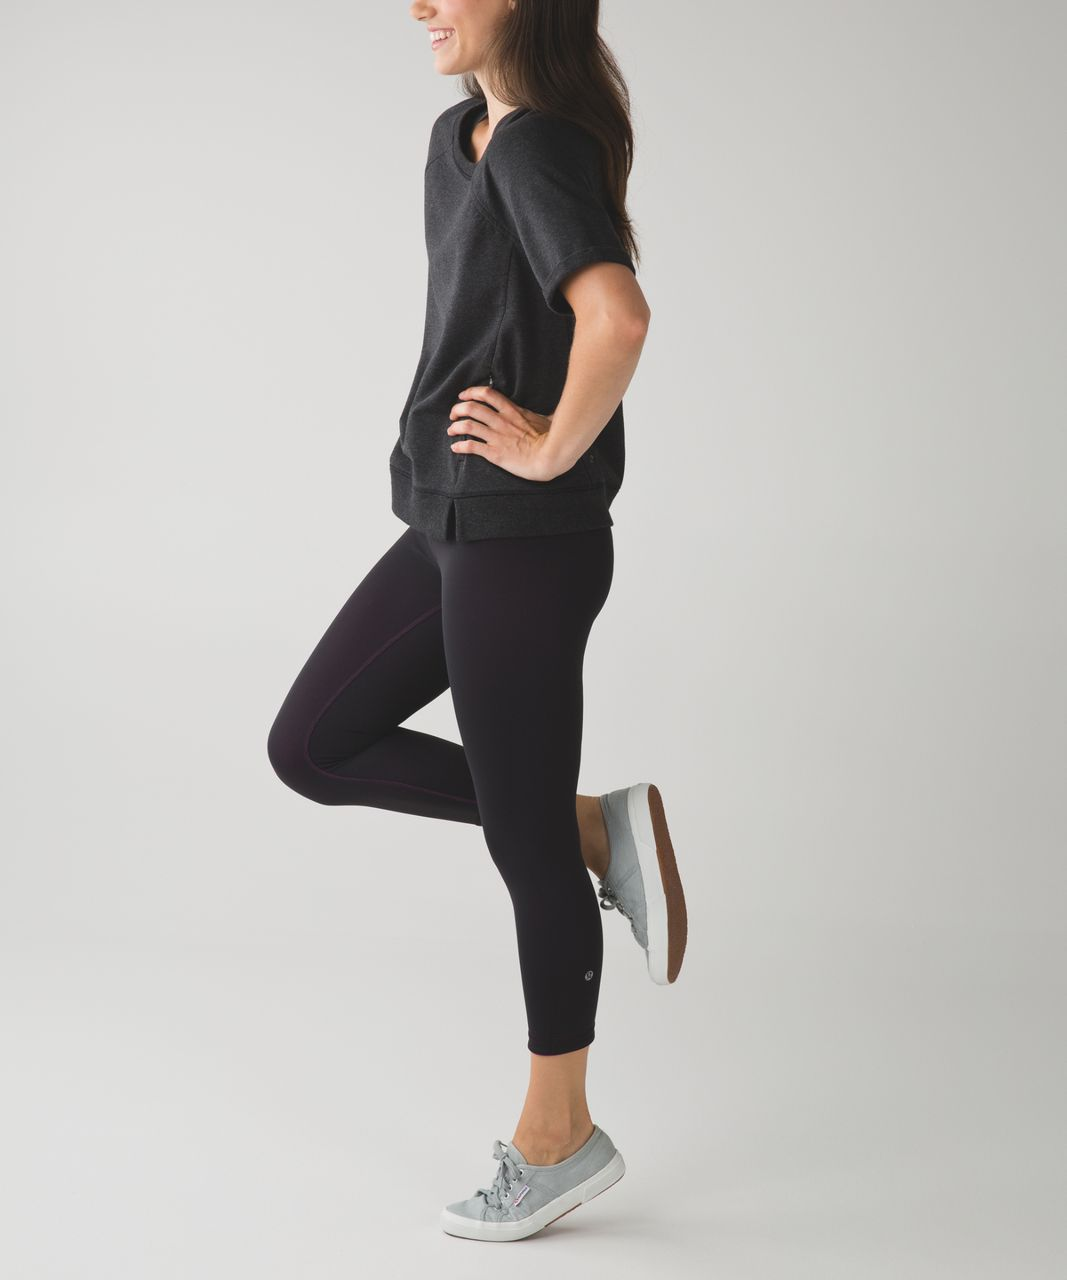 Lululemon Wunder Under Crop III (Reversible) - Black / Ultra Violet